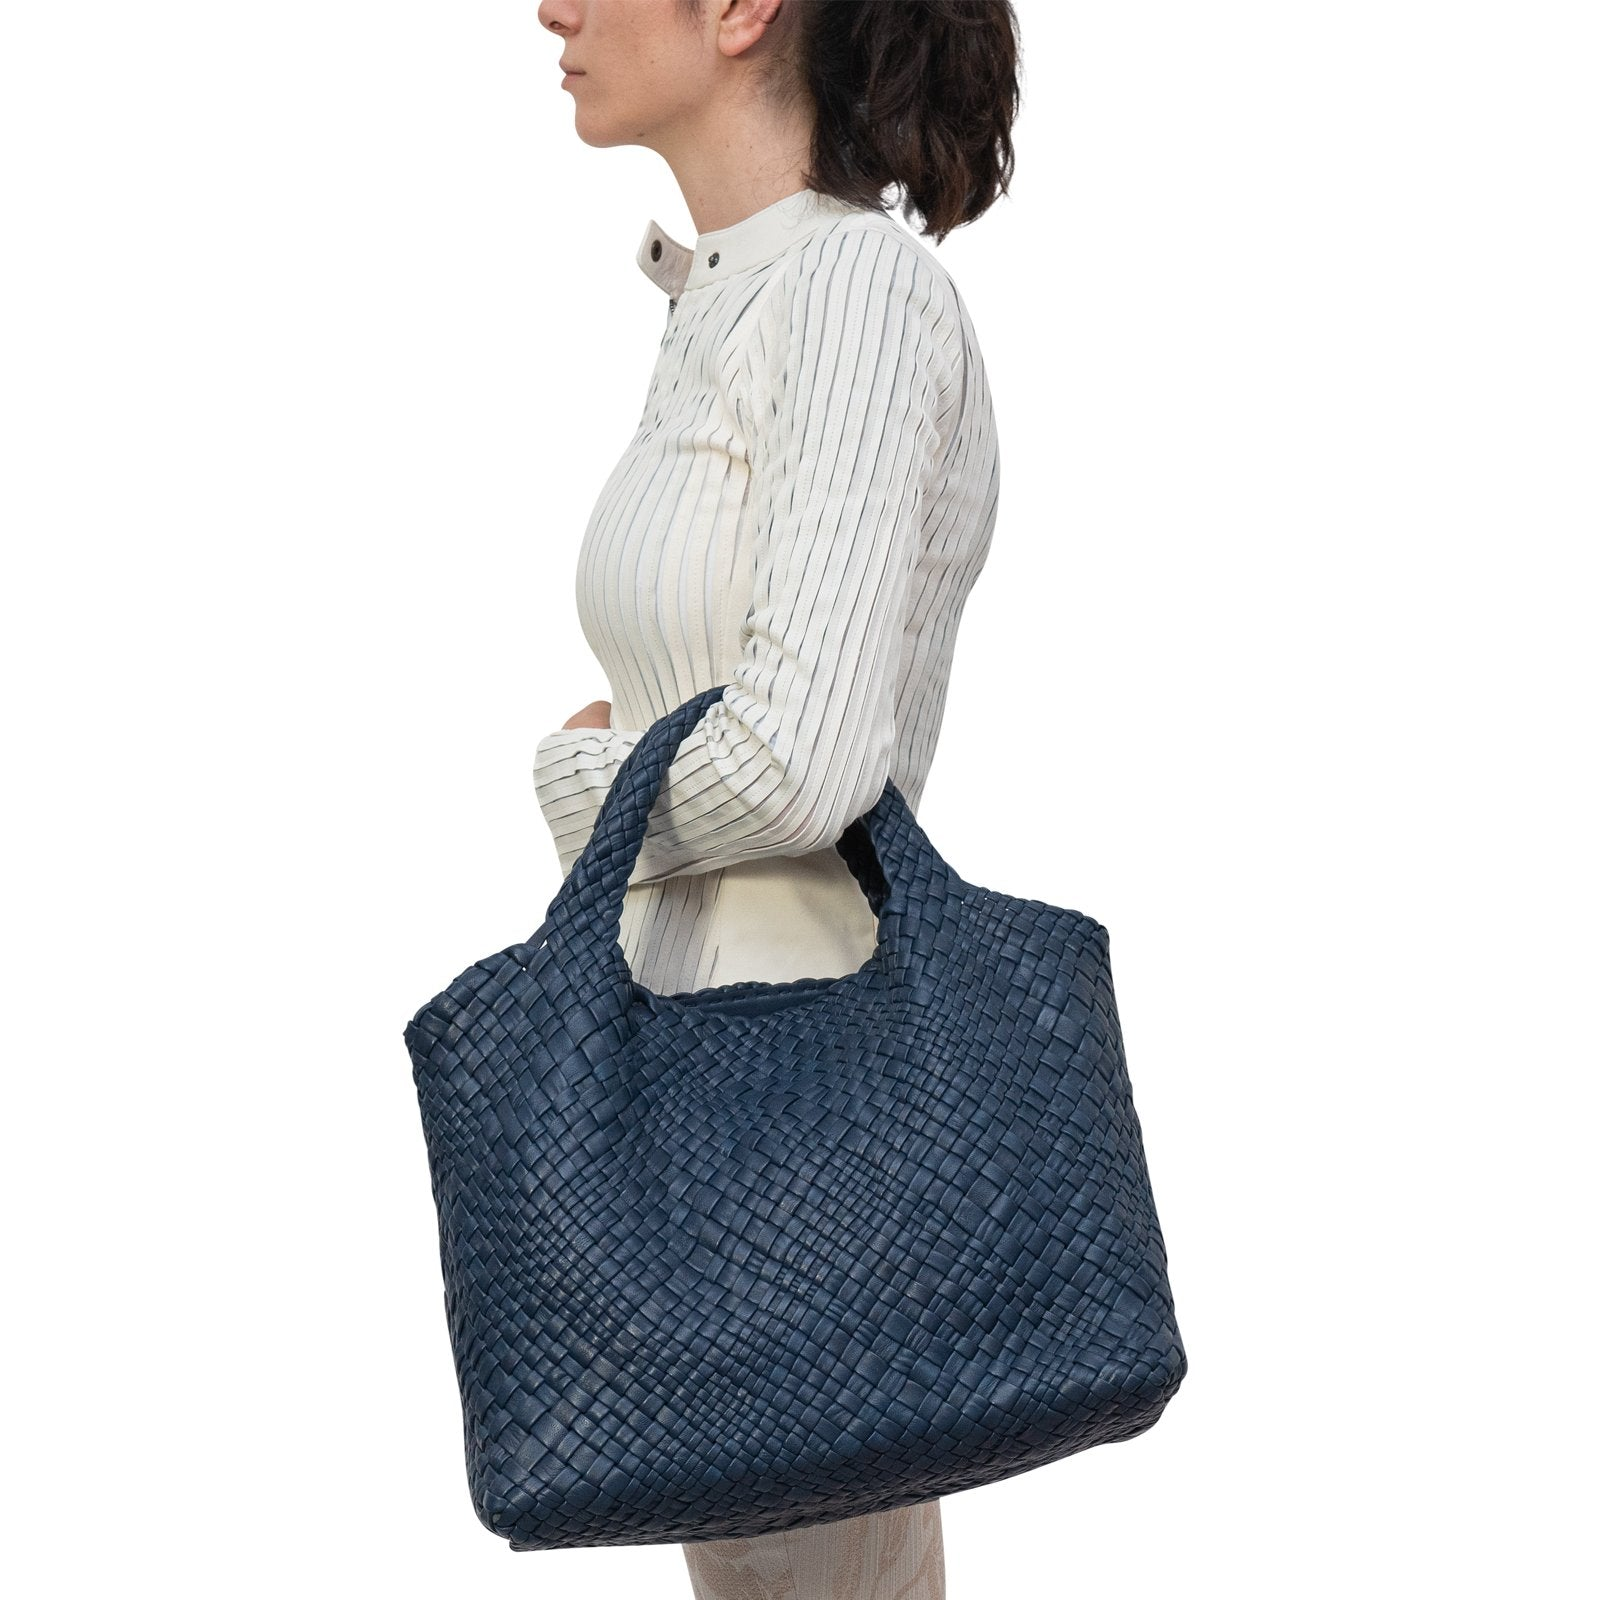 Women Intrecciato Optical Large Hobo-Tote in Navy Blue - Jennifer Tattanelli